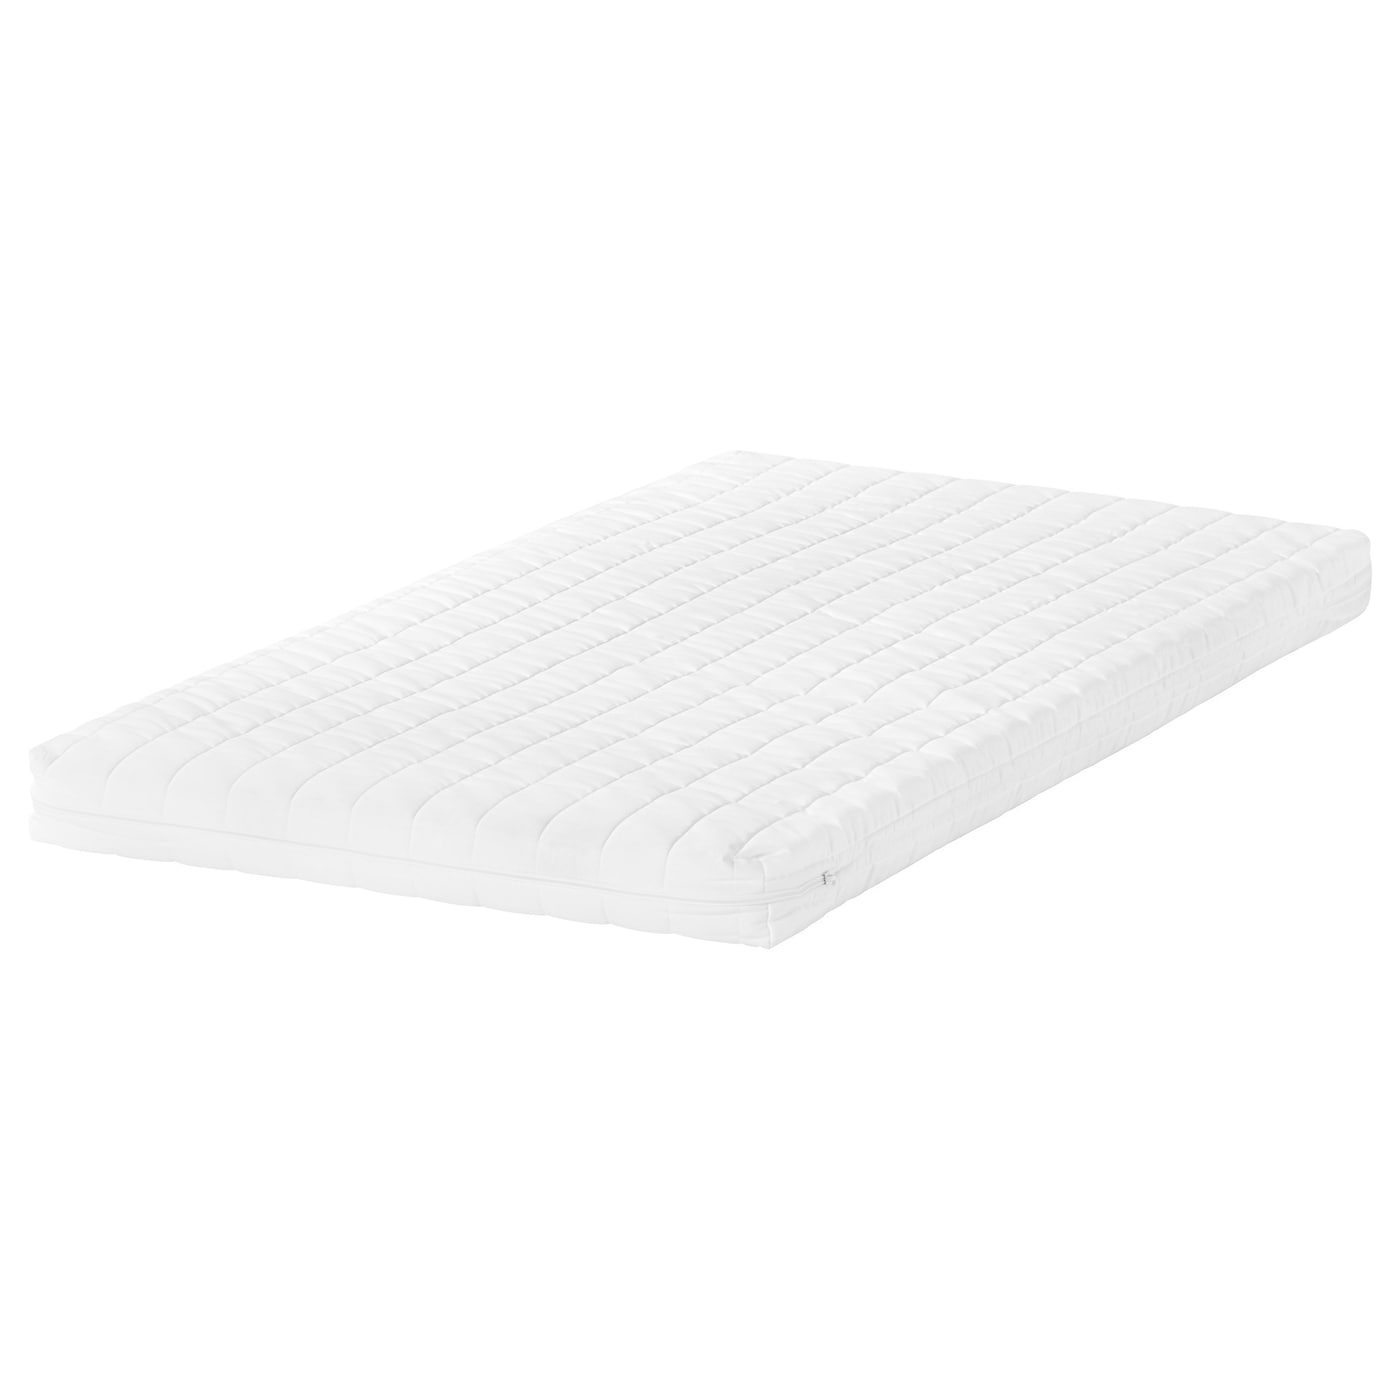 IKEA VYSSA SNOSA mattress for cot A durable mattress that can be used for a longer period of time.